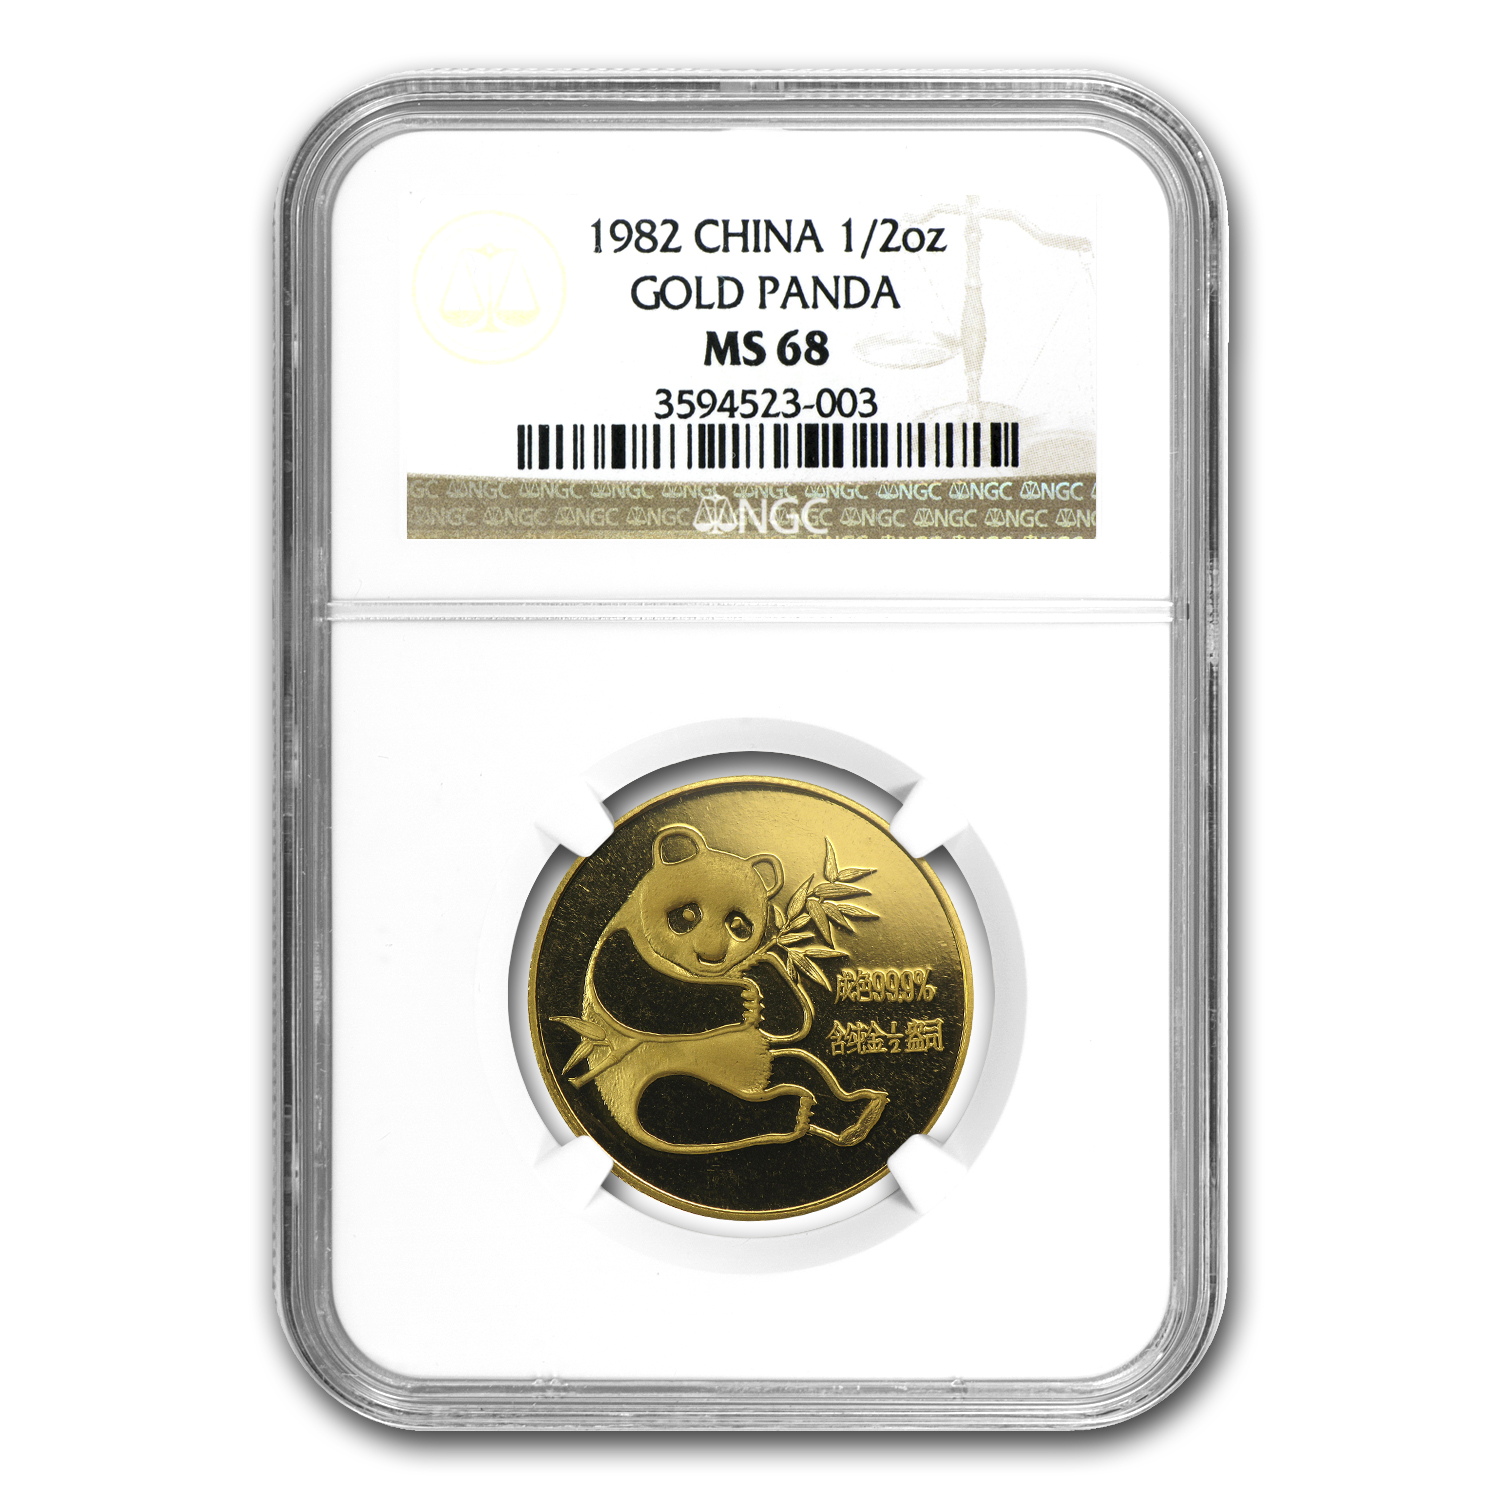 1982 (1/2 oz) Gold Chinese Pandas - MS-68 NGC